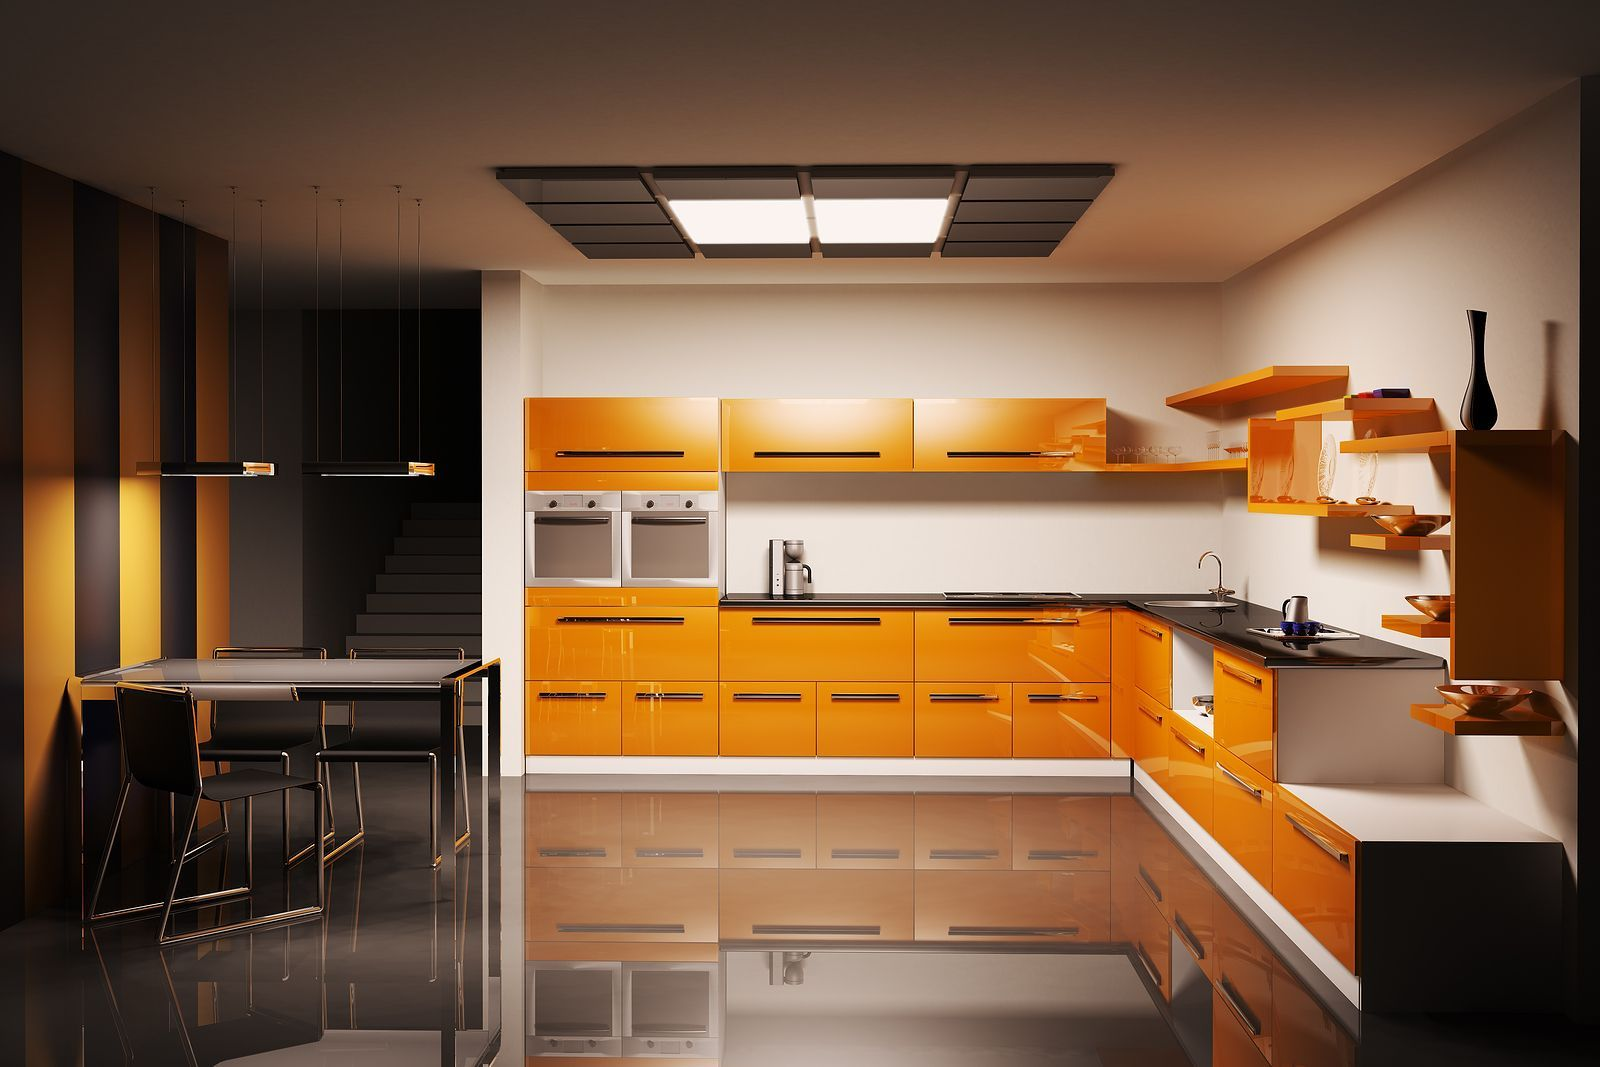 Kitchen : Modern Kitchen Cabinet Design Completed With Sink And Combined  With Dining Area Sets And Fascinating I Shaped Kitchen Layout Applying  White And ...